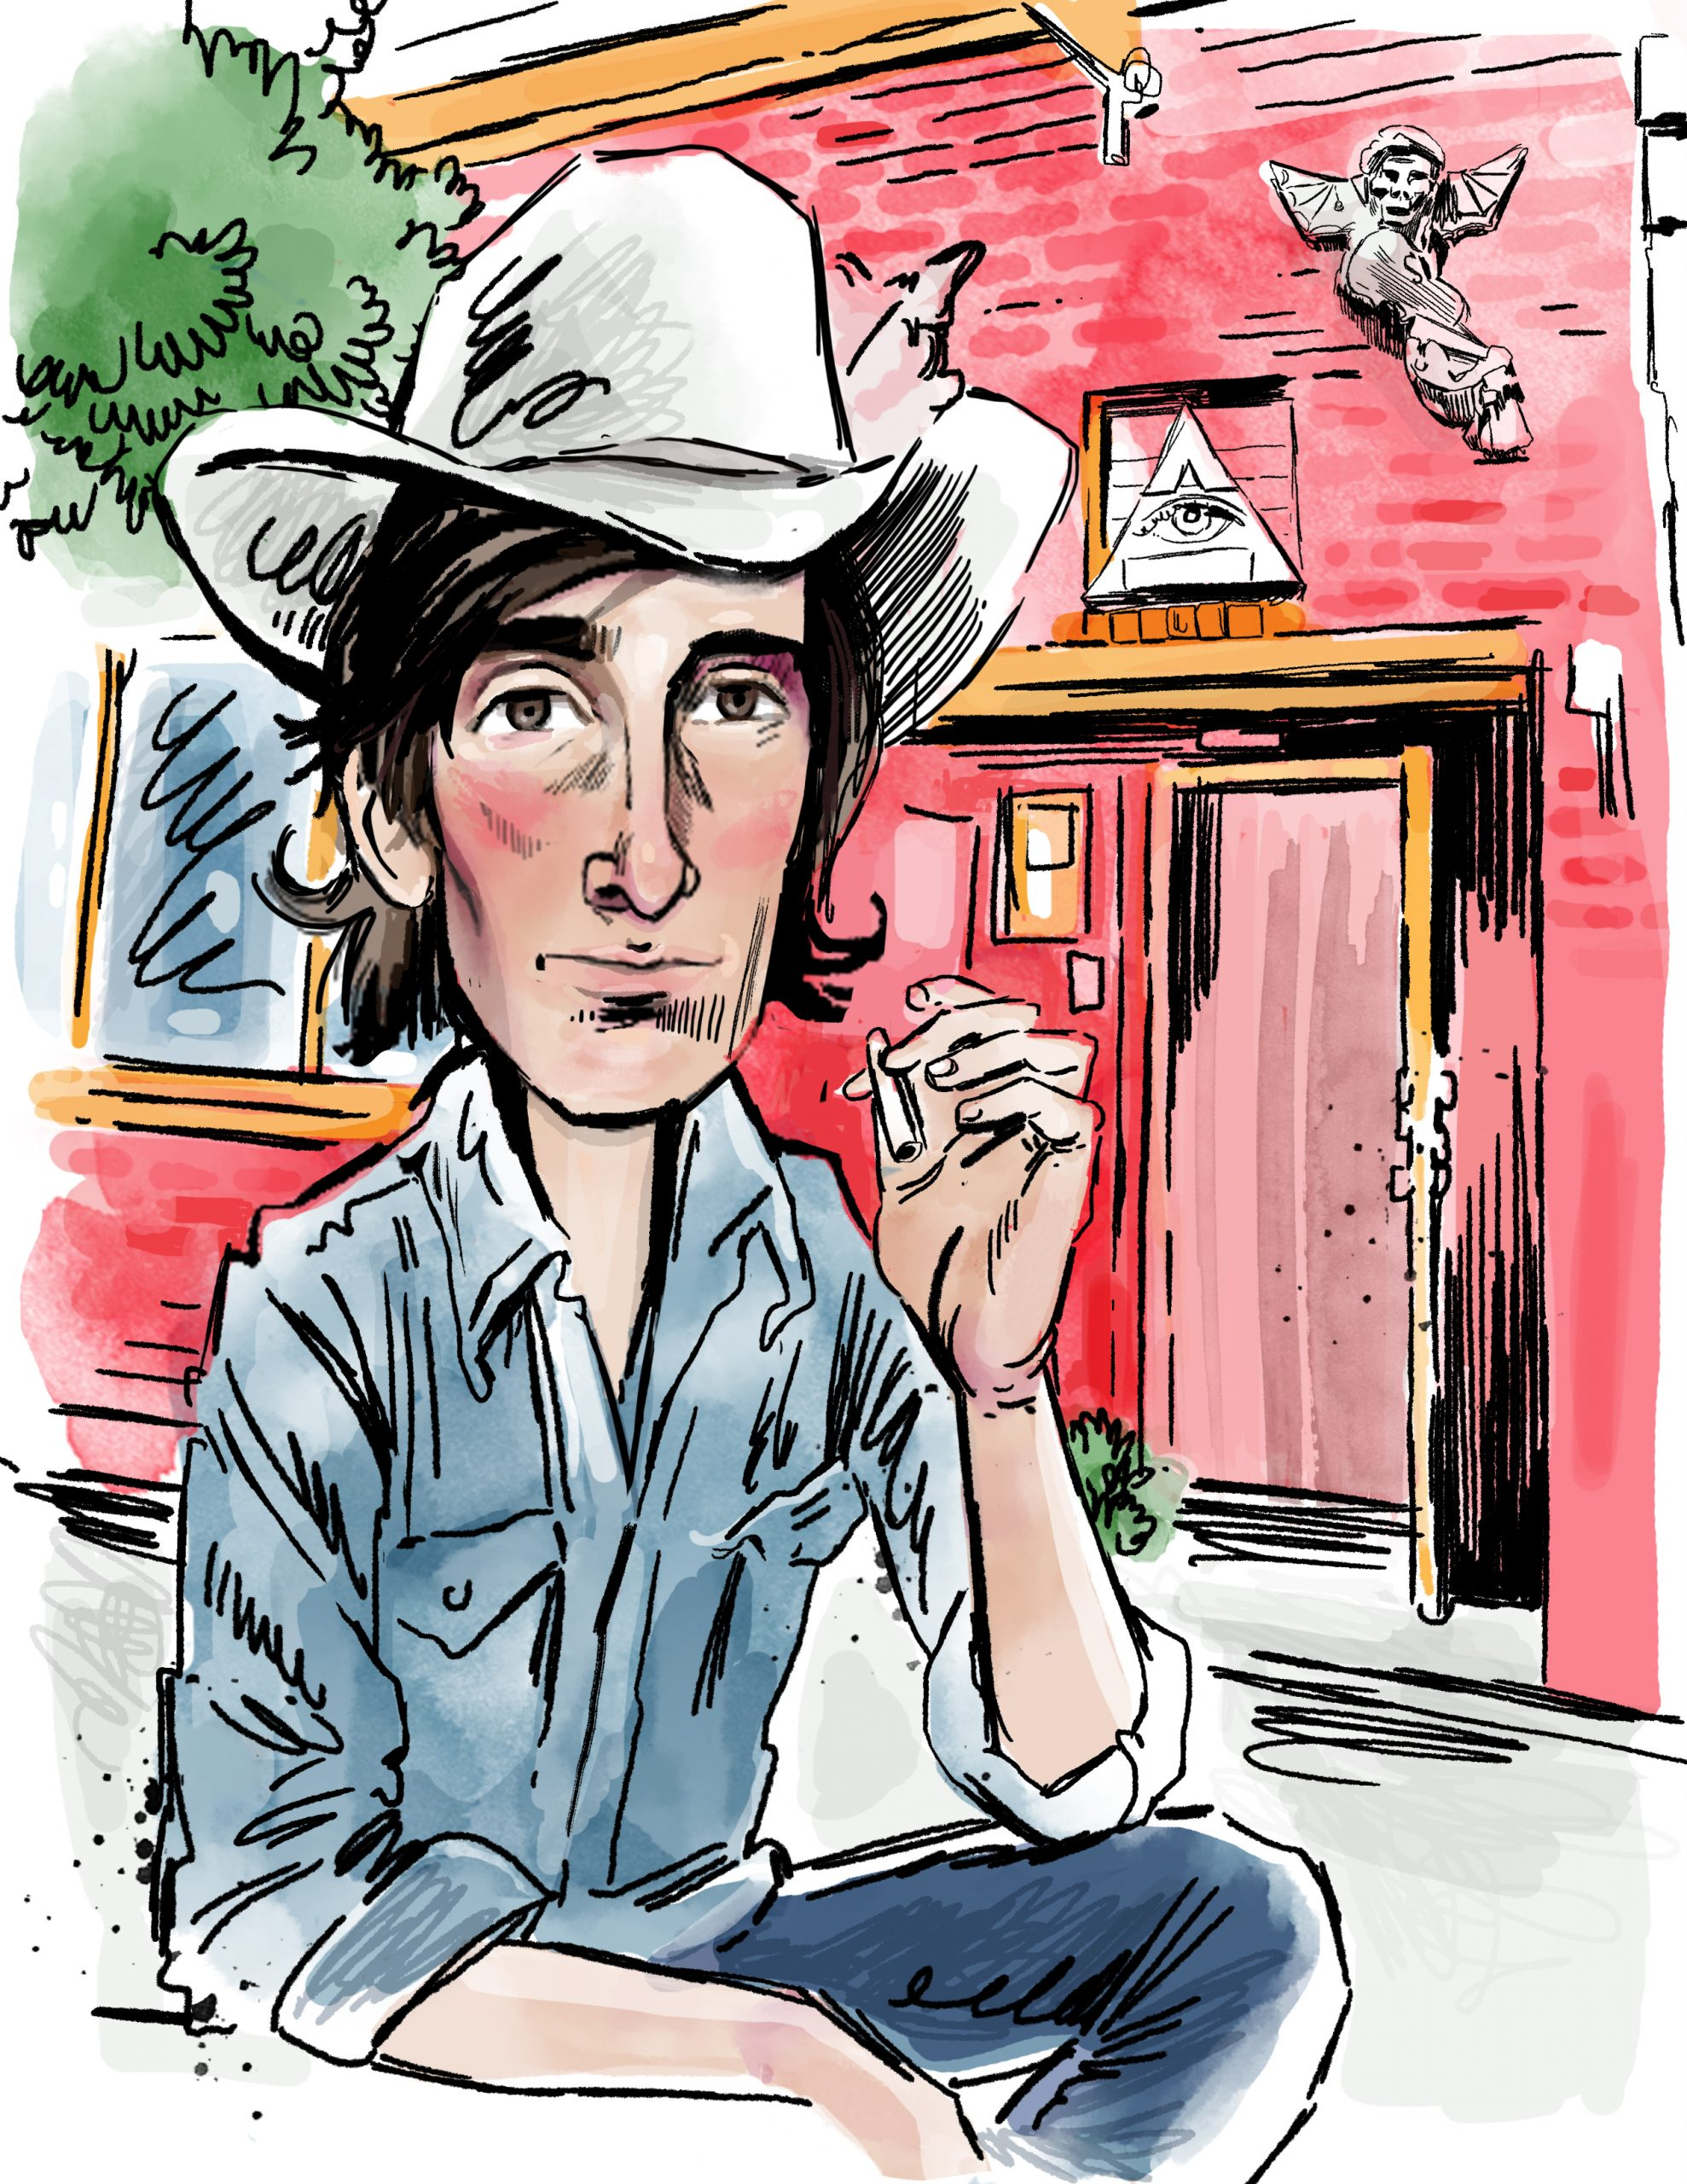 Searching For Townes Van Zandt in Buffalo